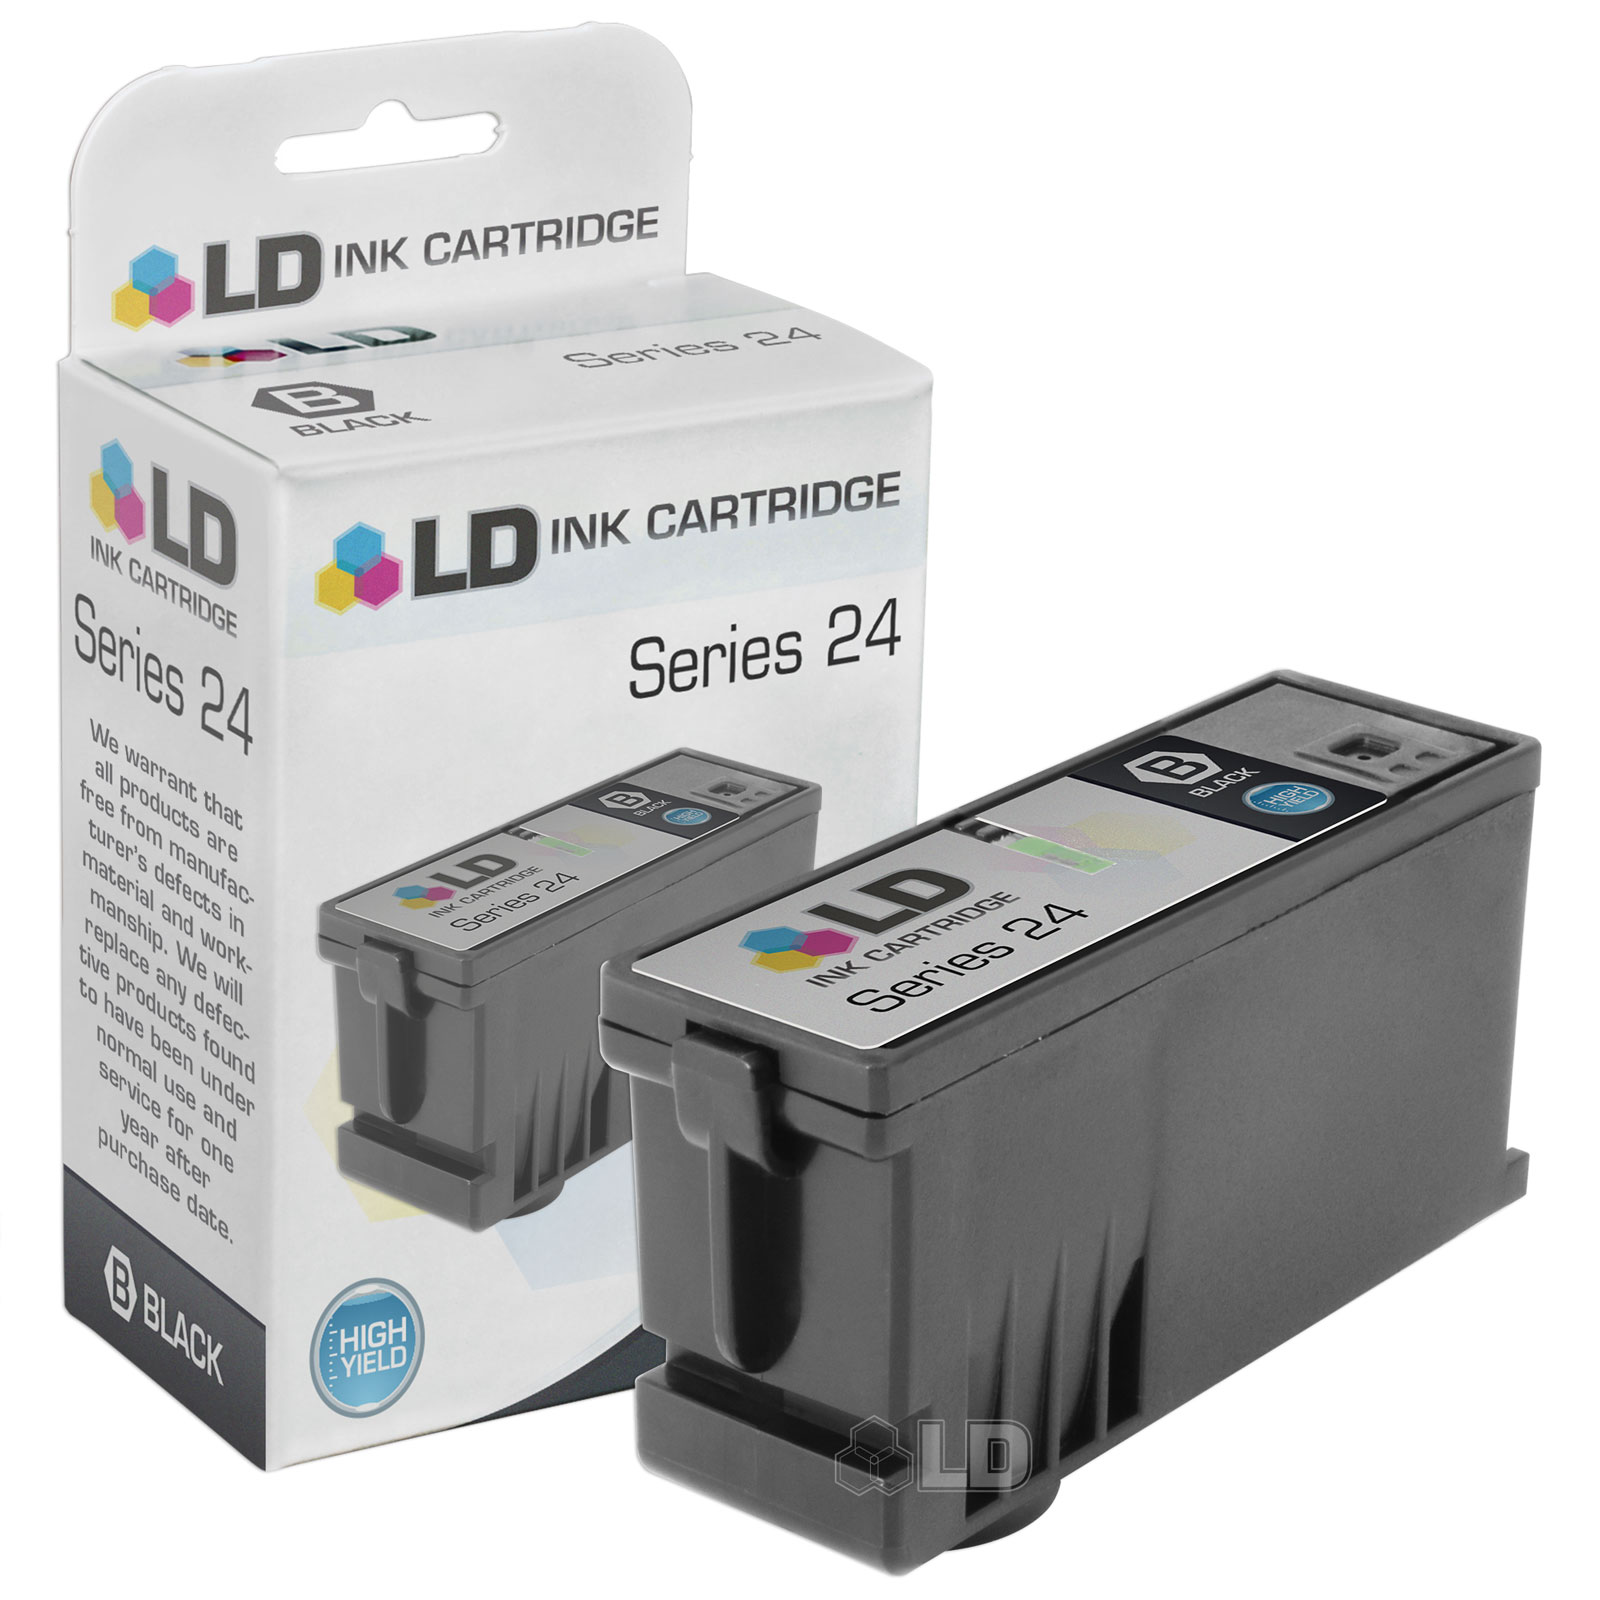 LD Compatible T109N / 330-5287 (Series 24) High Yield Black Ink Cartridge for Dell P713w and V715w